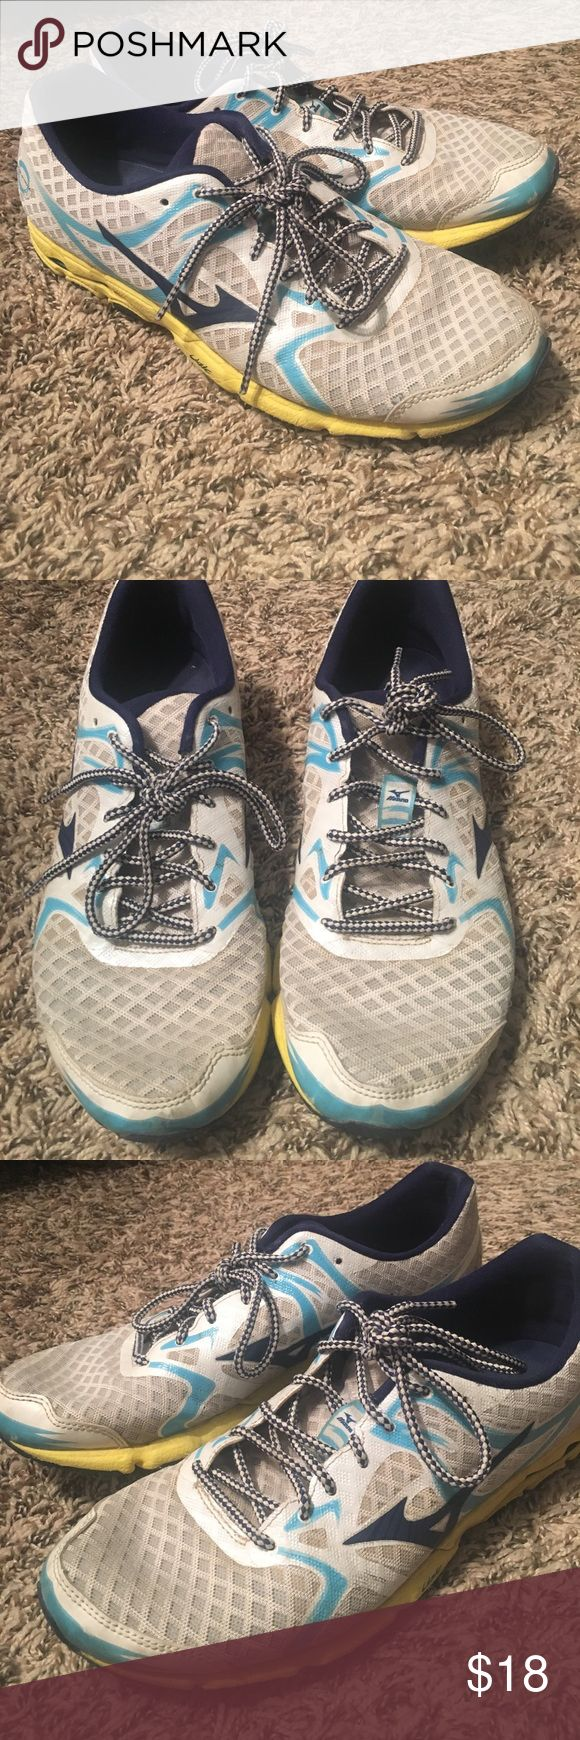 Mizuno Shoes Mizuno Running Shoes in Good Condition! 🏃🏻♀️ white with yellow and teal design. Mizuno Shoes Sneakers